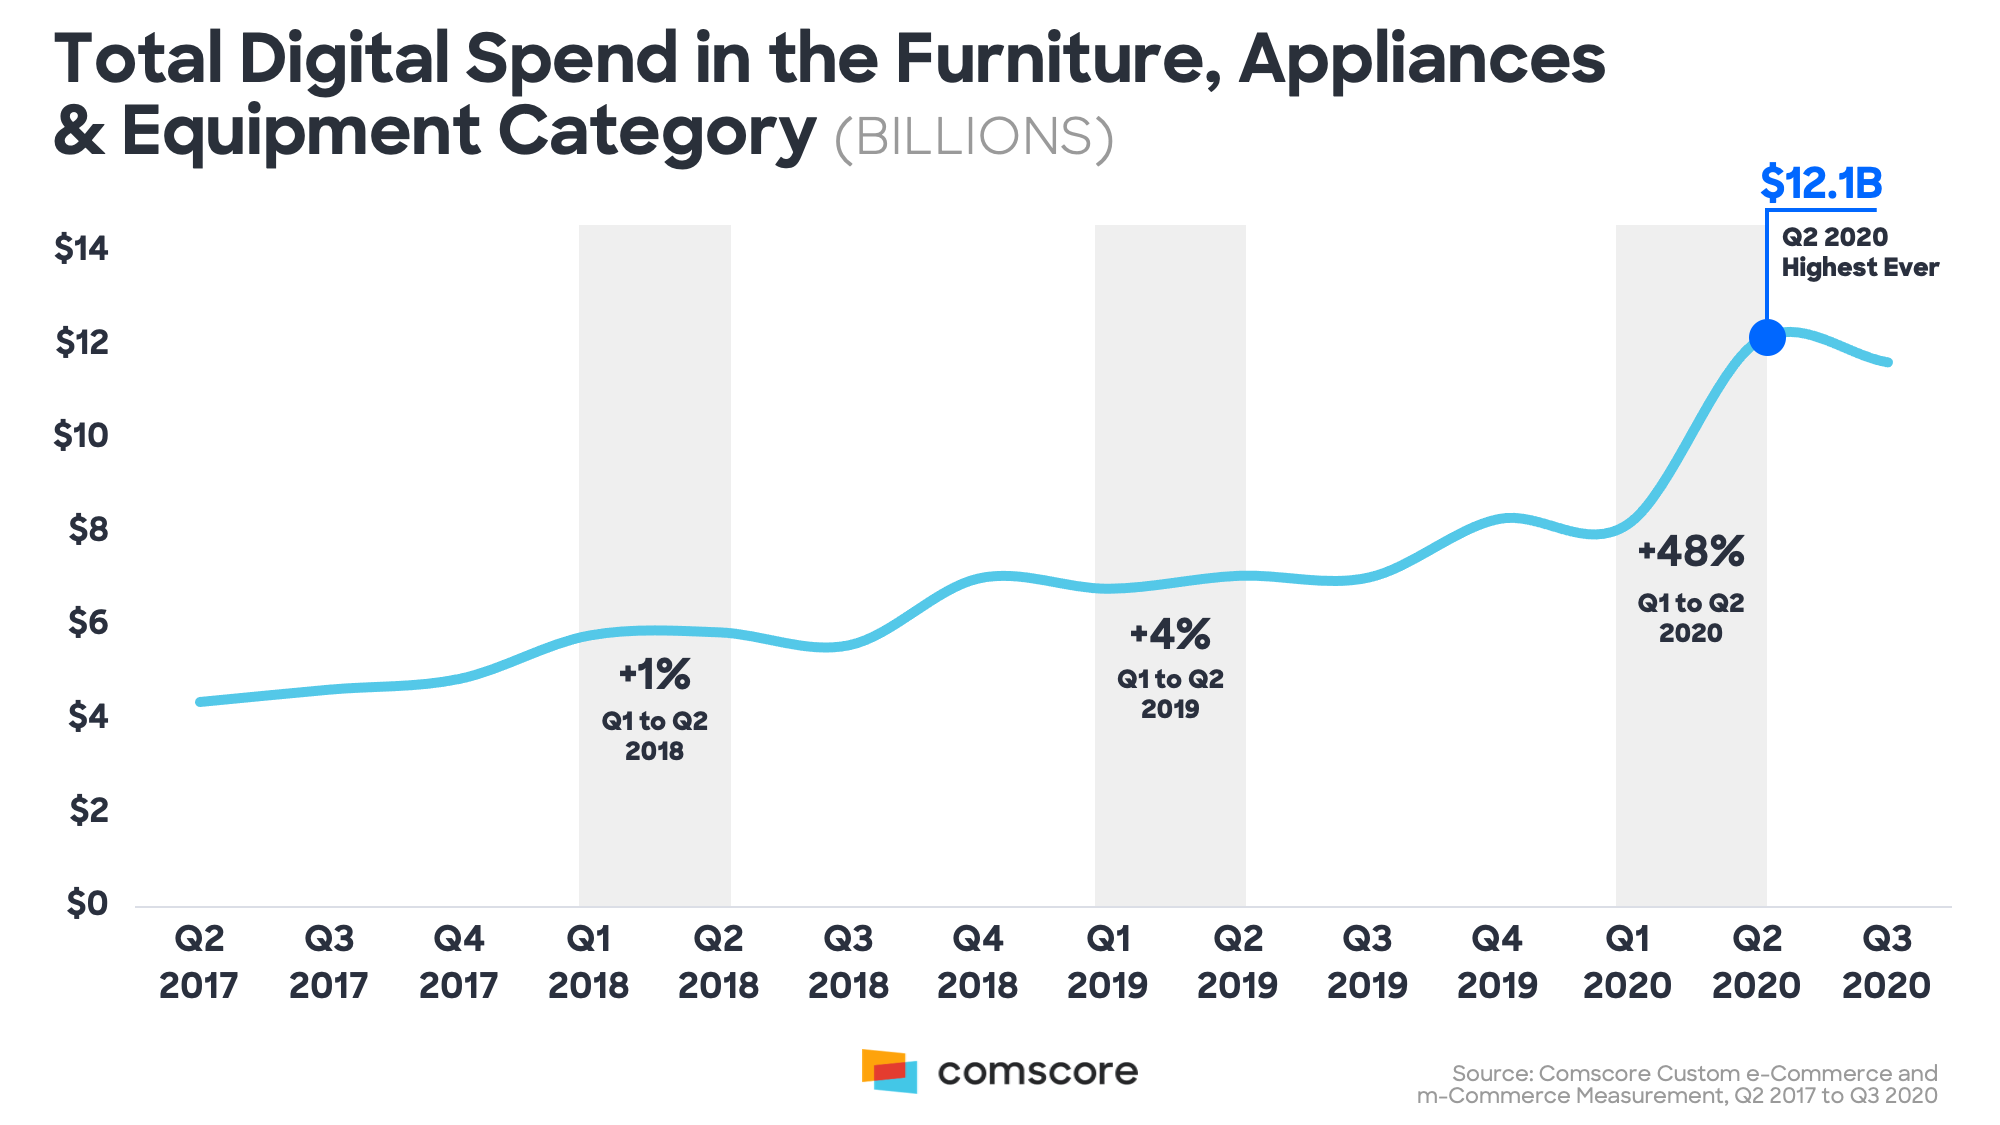 Total Digital Spend in Furniture Appliances and Equiptment Category